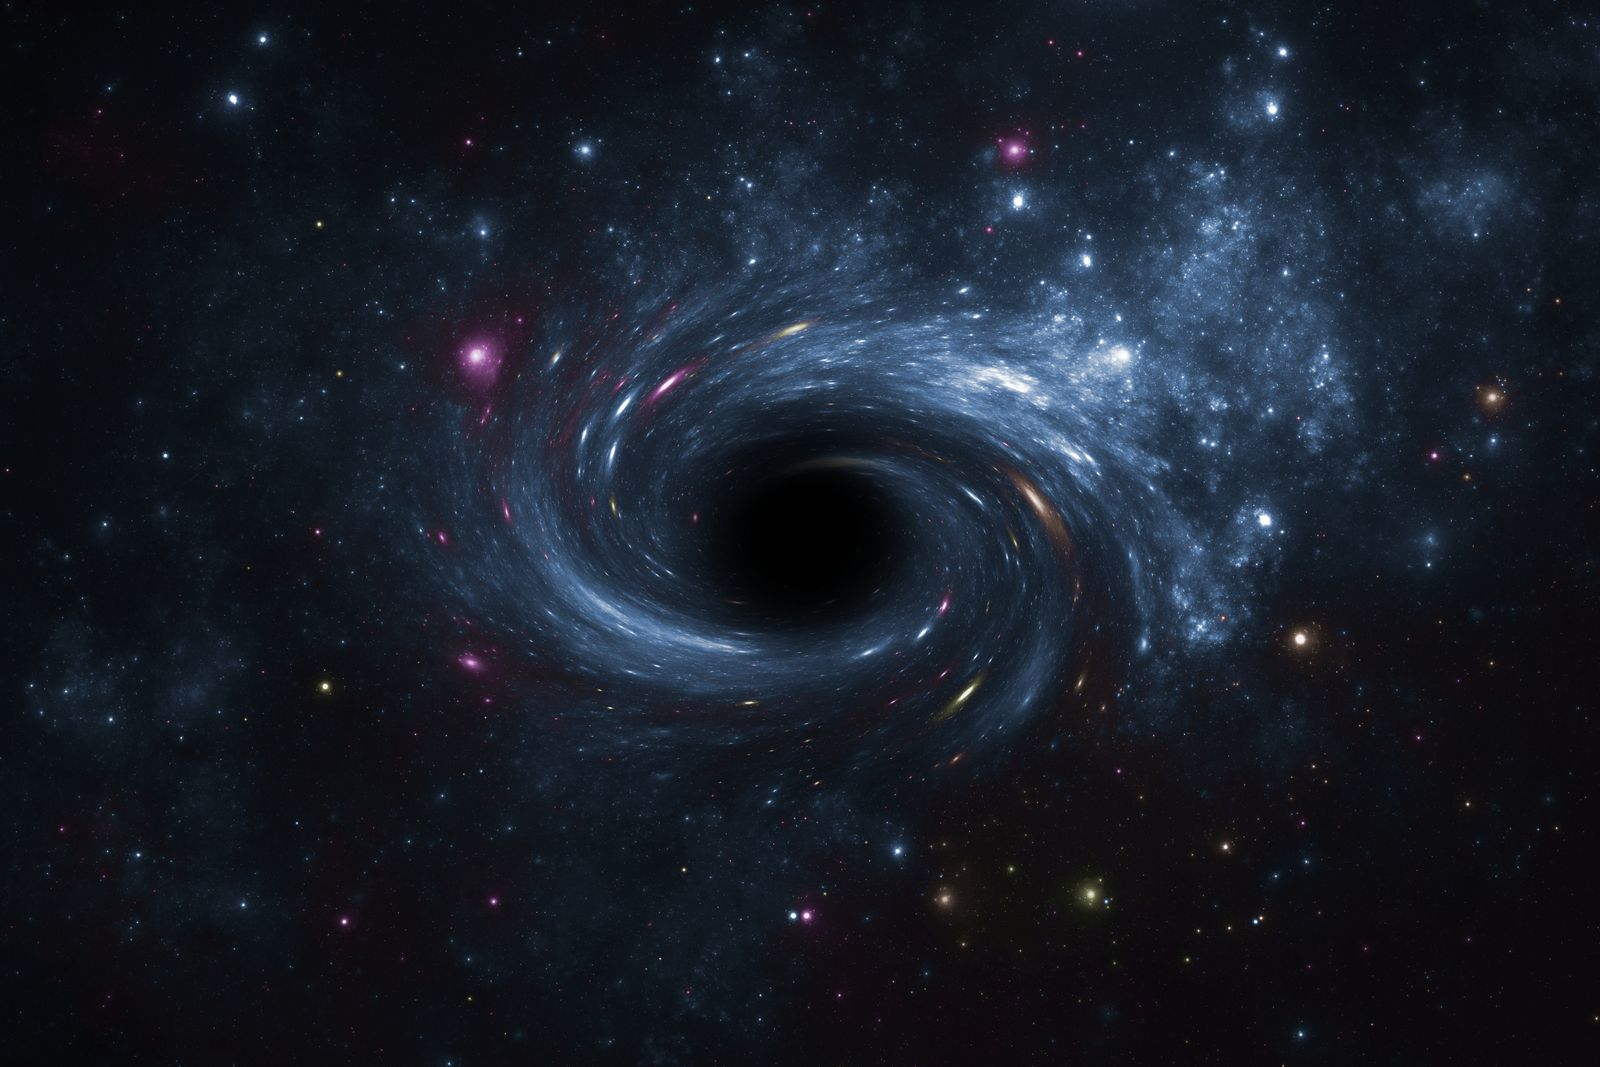 Deep space star field with black hole.